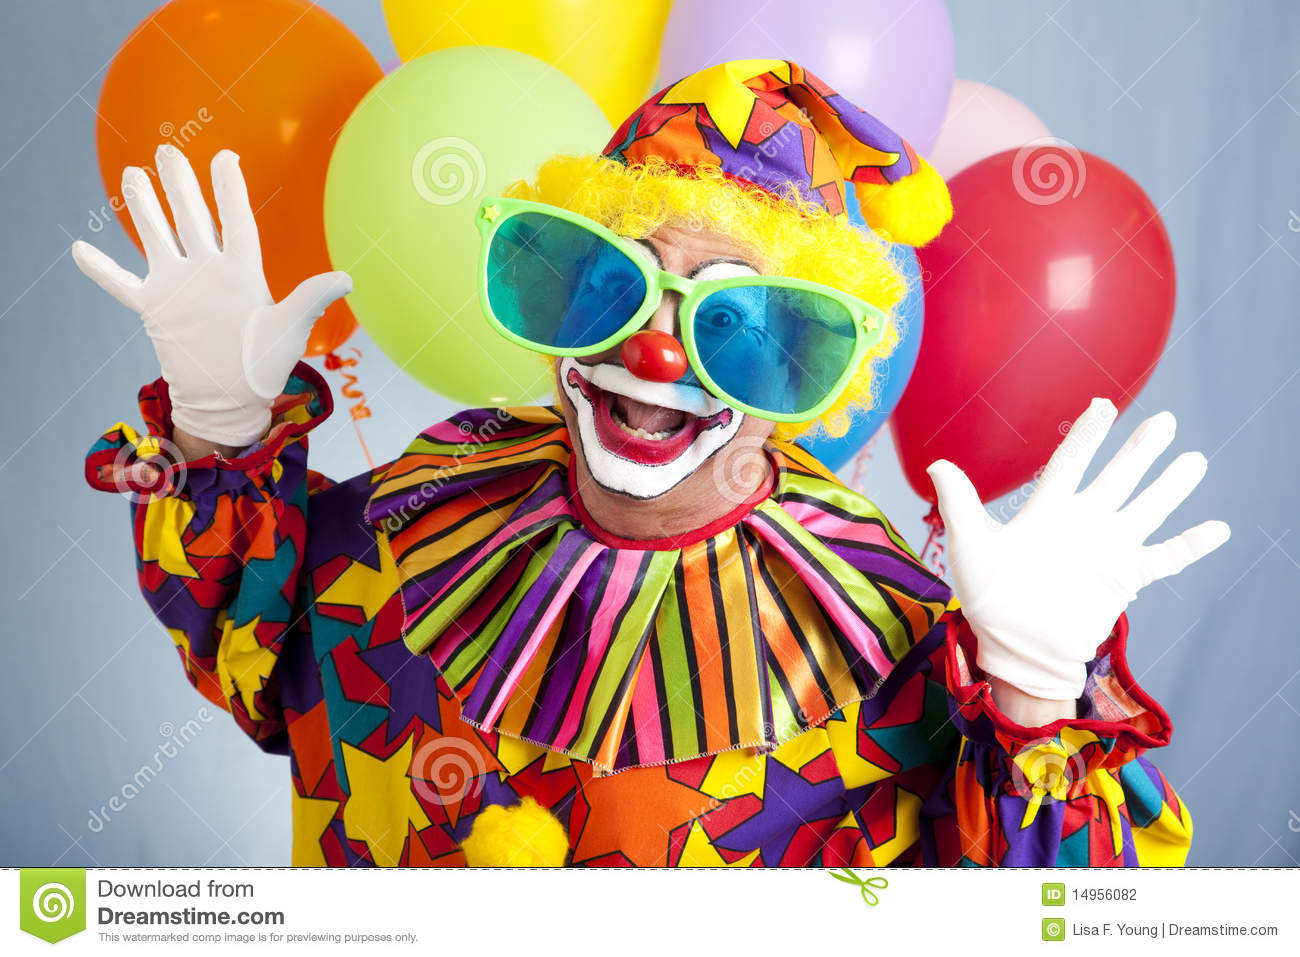 Funny Clown In Big Glasses Stock Photography - Image: 14956082